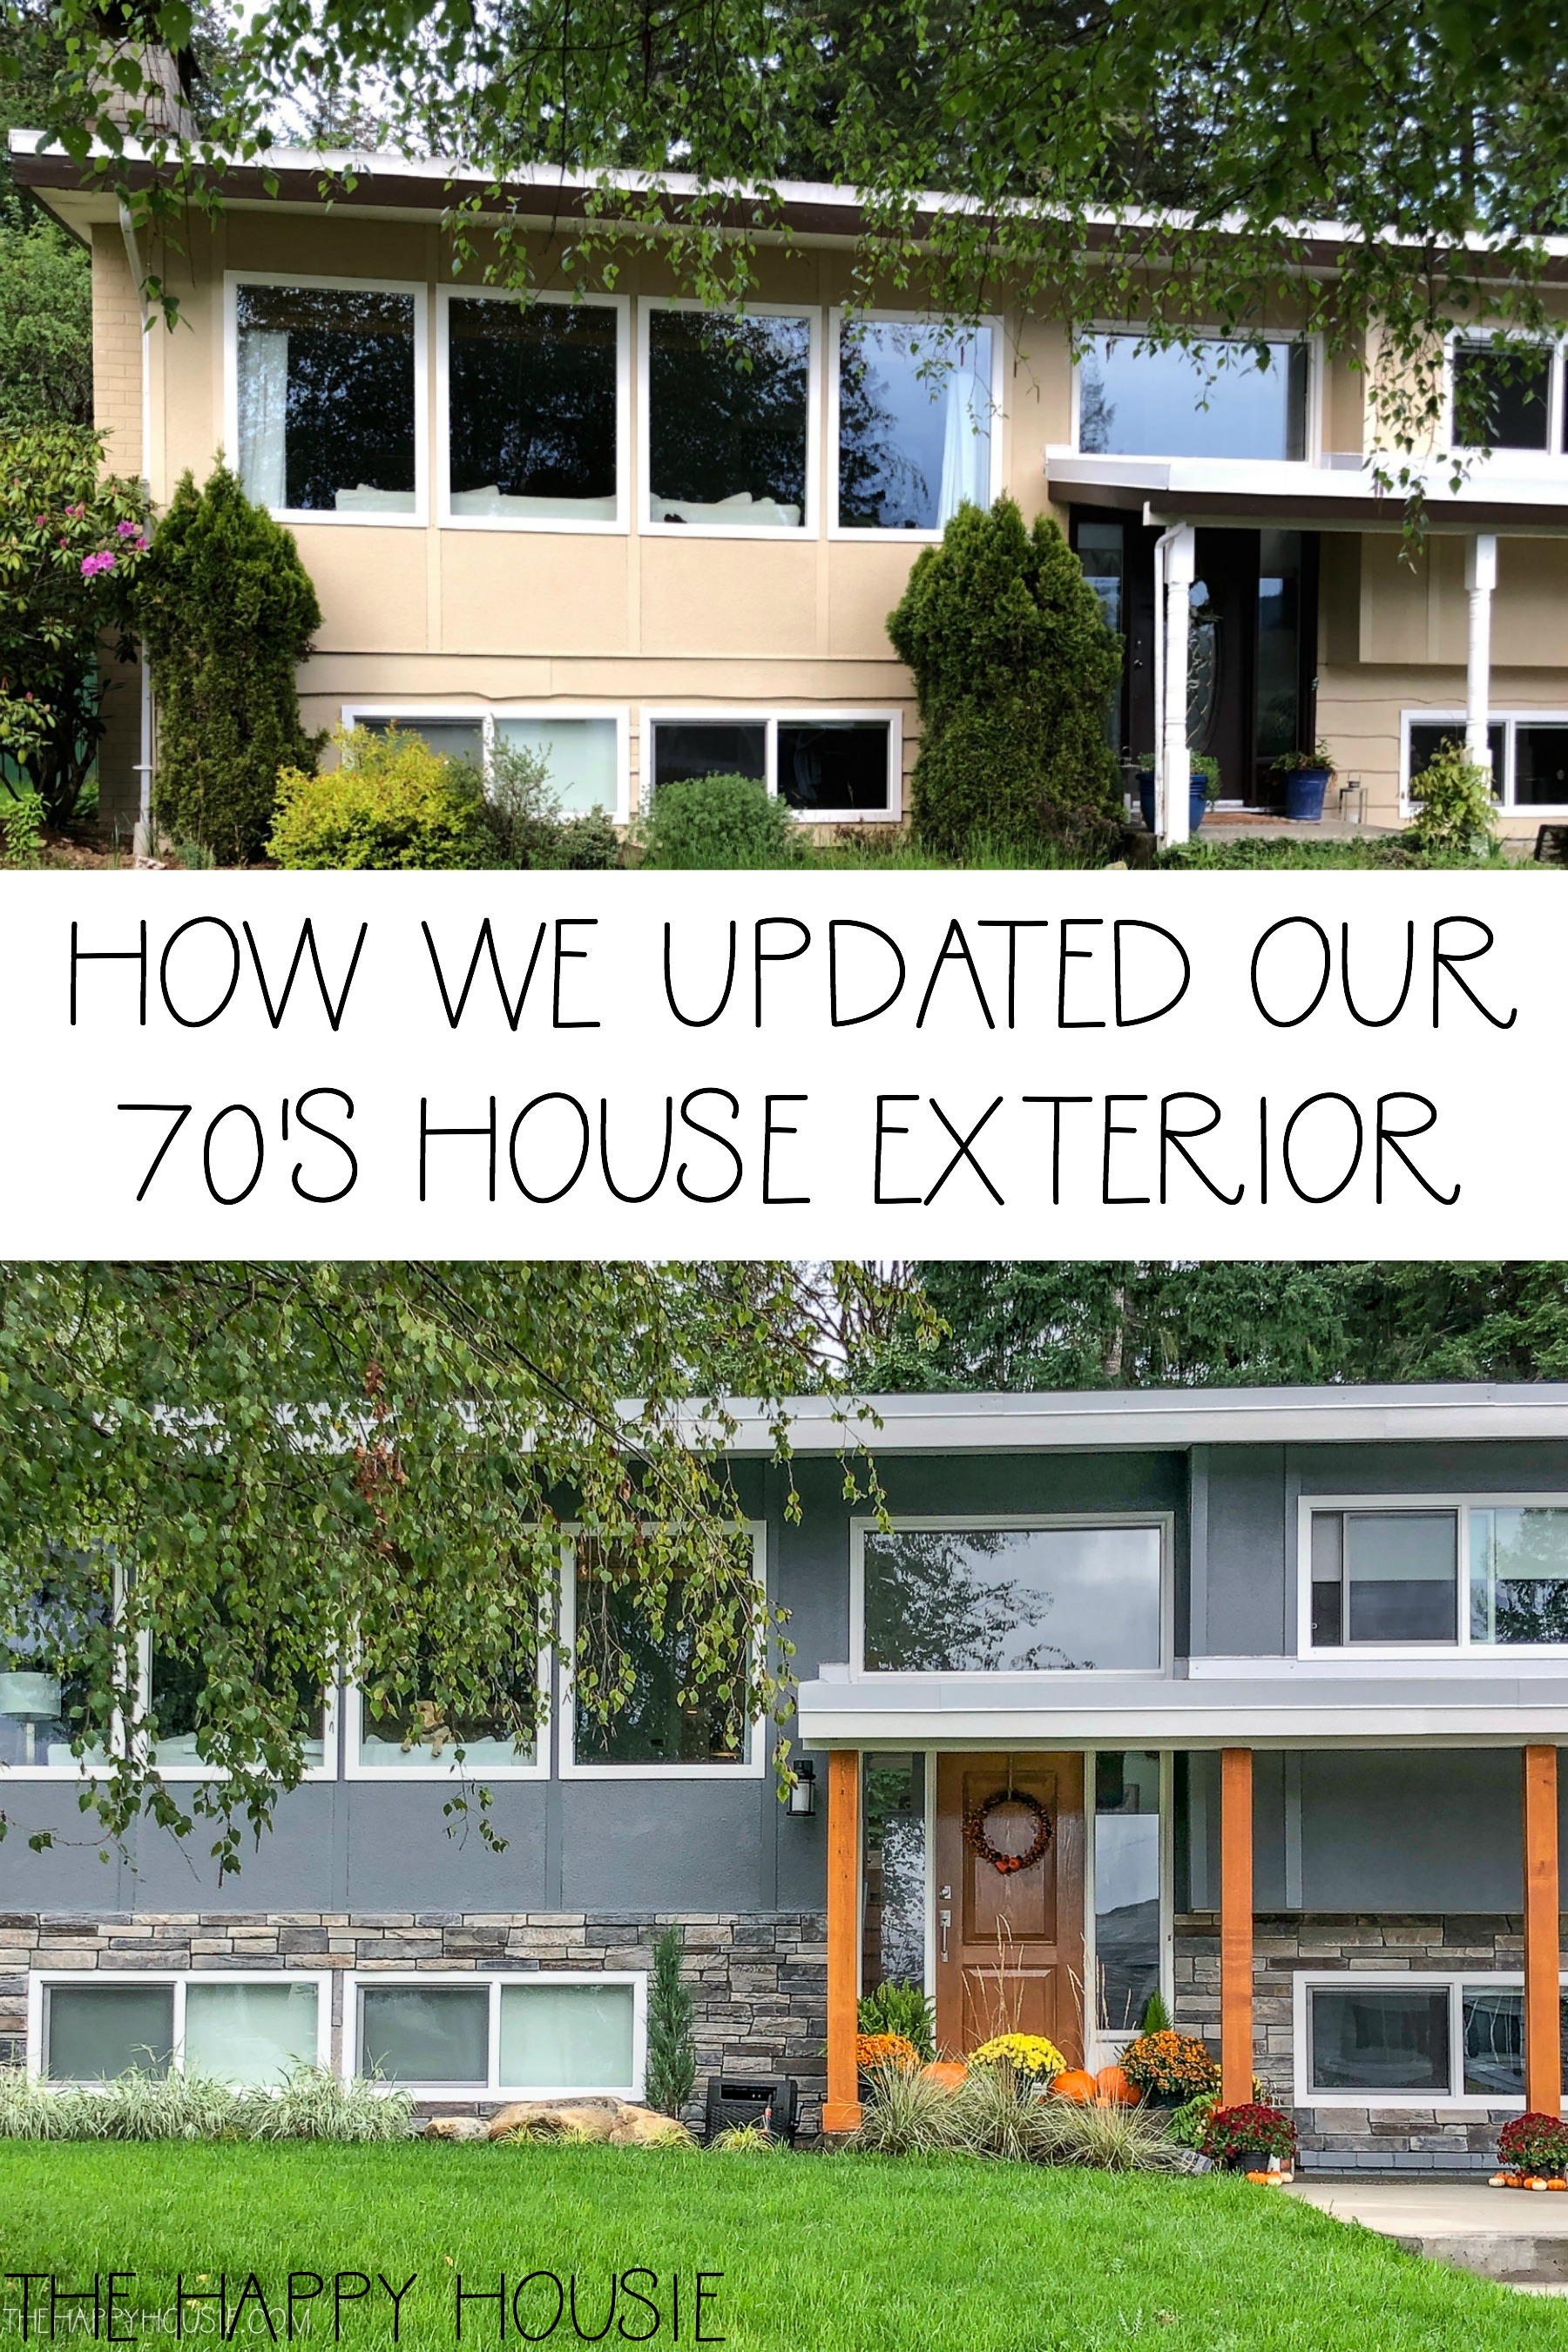 Front Yard Exterior Makeover Reveal Before After The Happy Housie